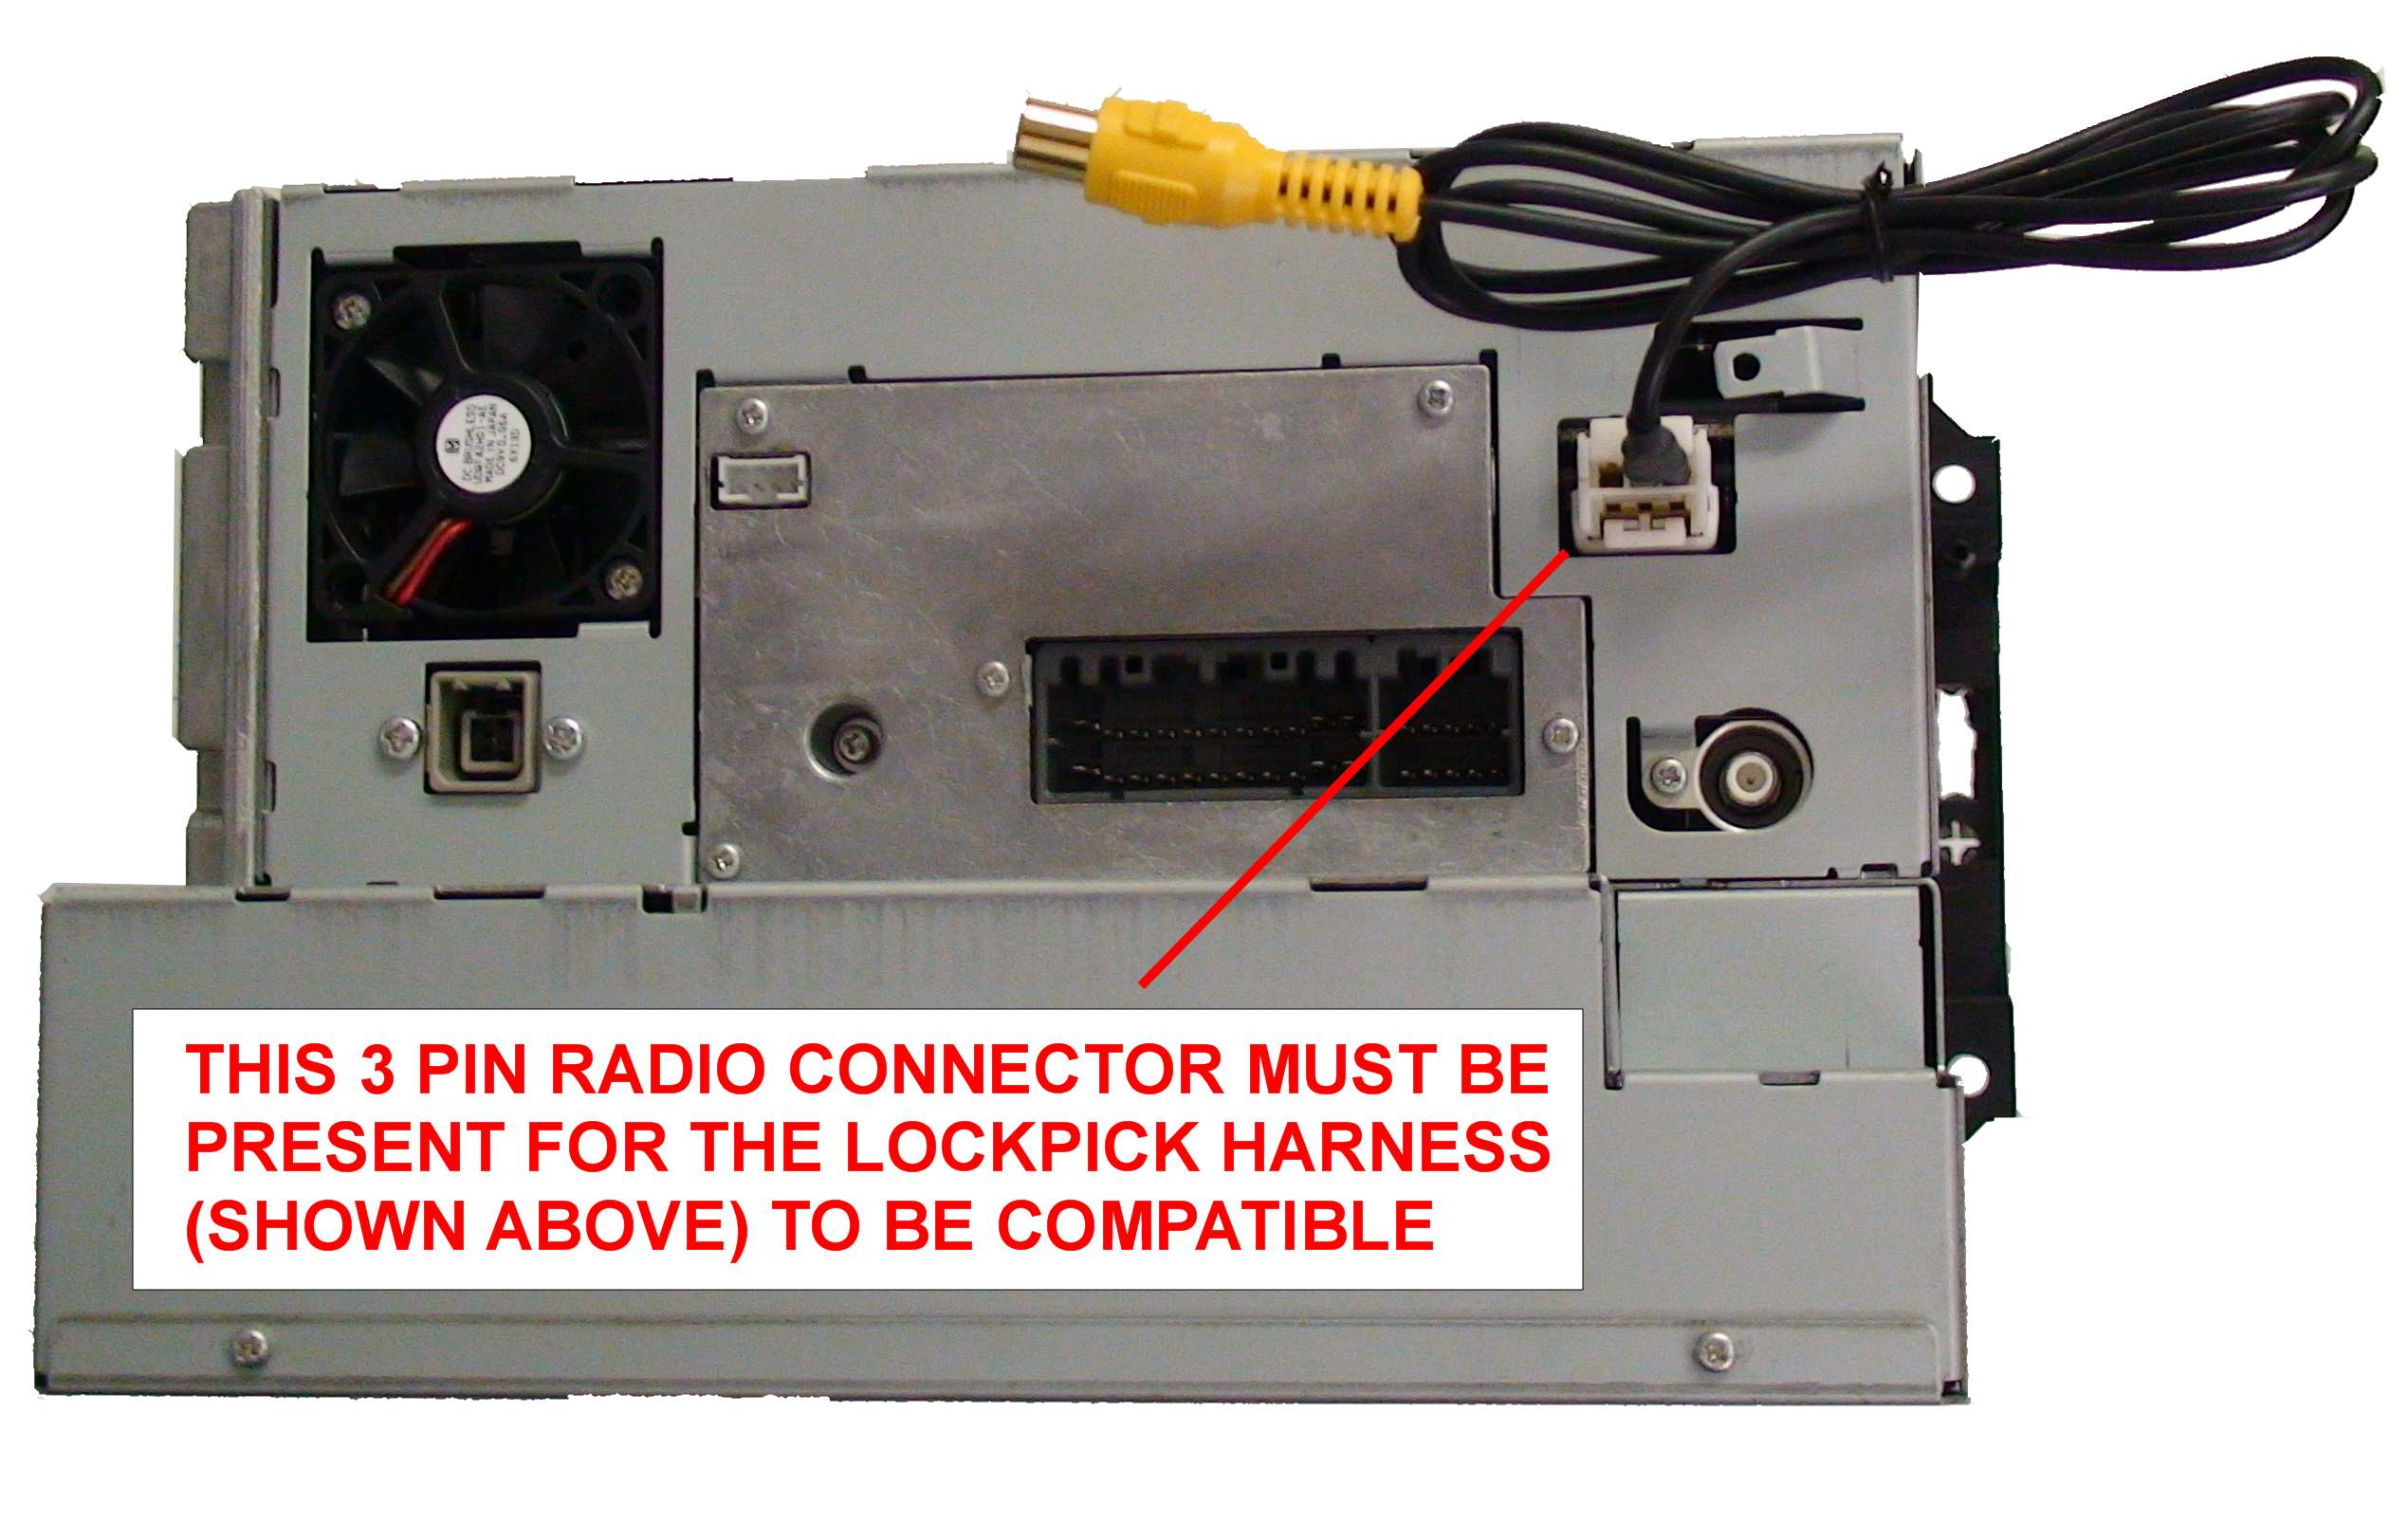 Rec Nav Lockpick 1980 Cj7 Wiring Diagram Fan Switch Note Navigation Radio Must Be Reverse Camera Capable White 3 Pin Connector On Back Of Click For Photo Example